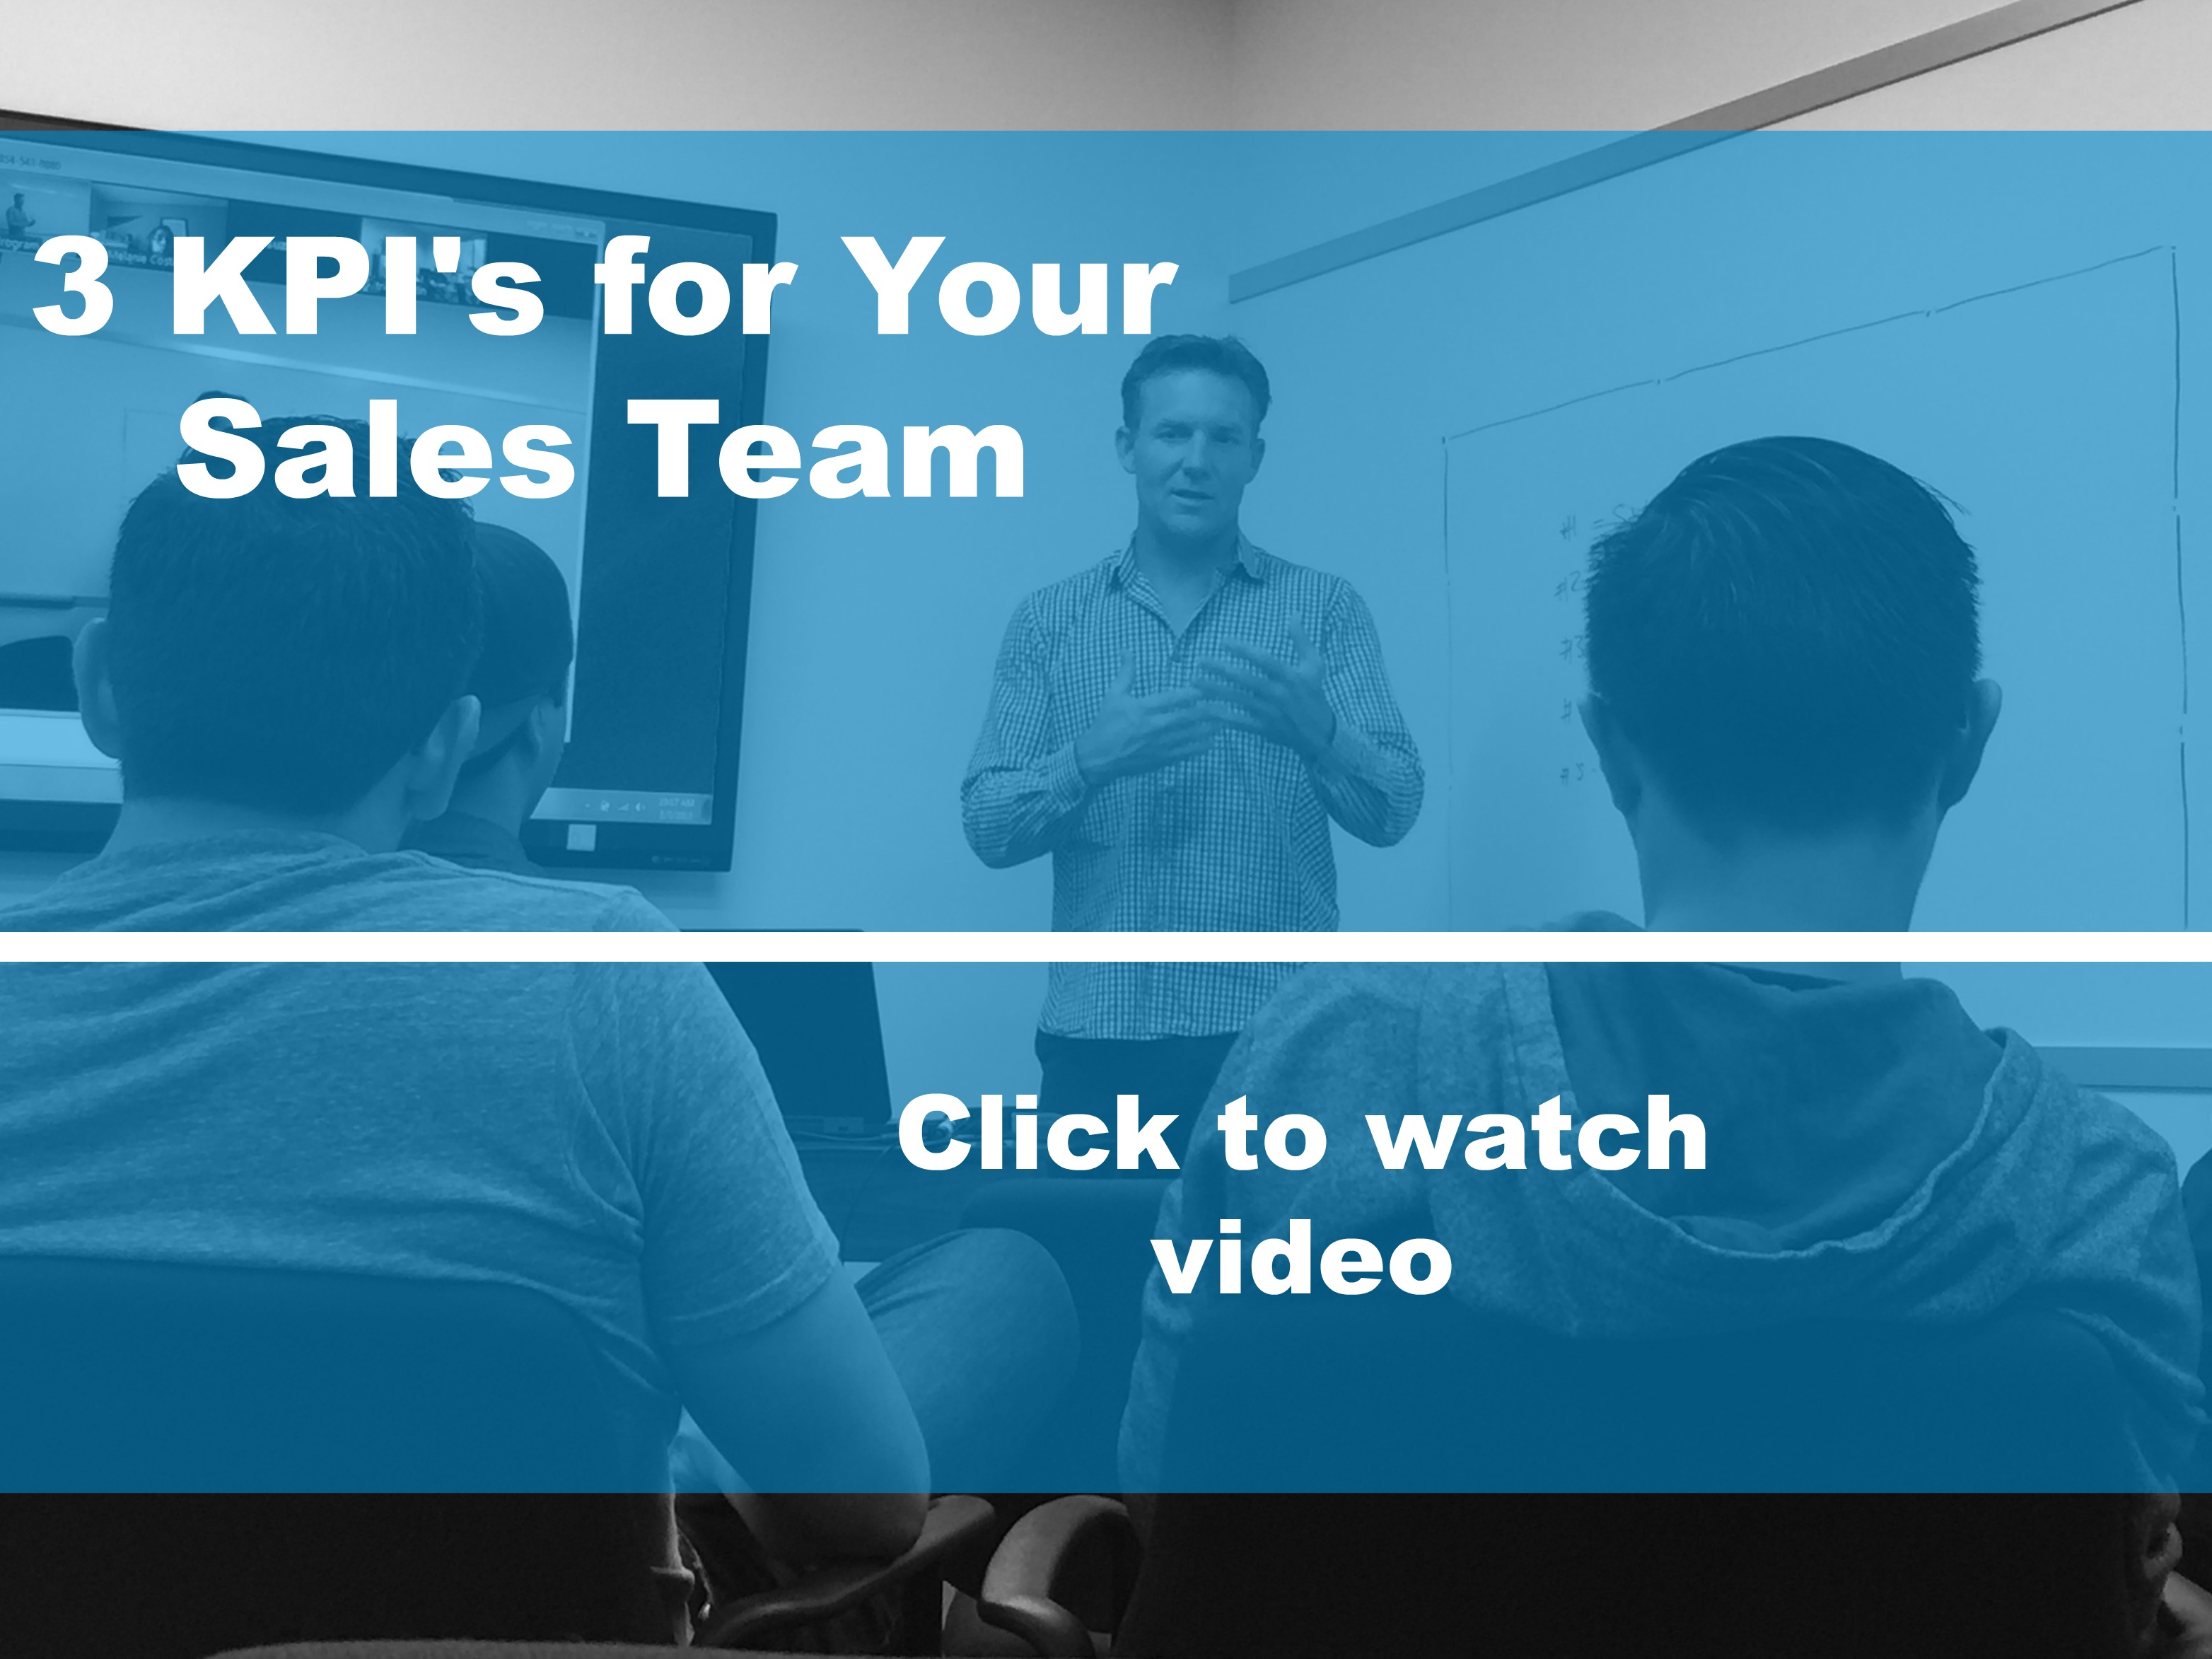 3 KPI's for Your Sales Team